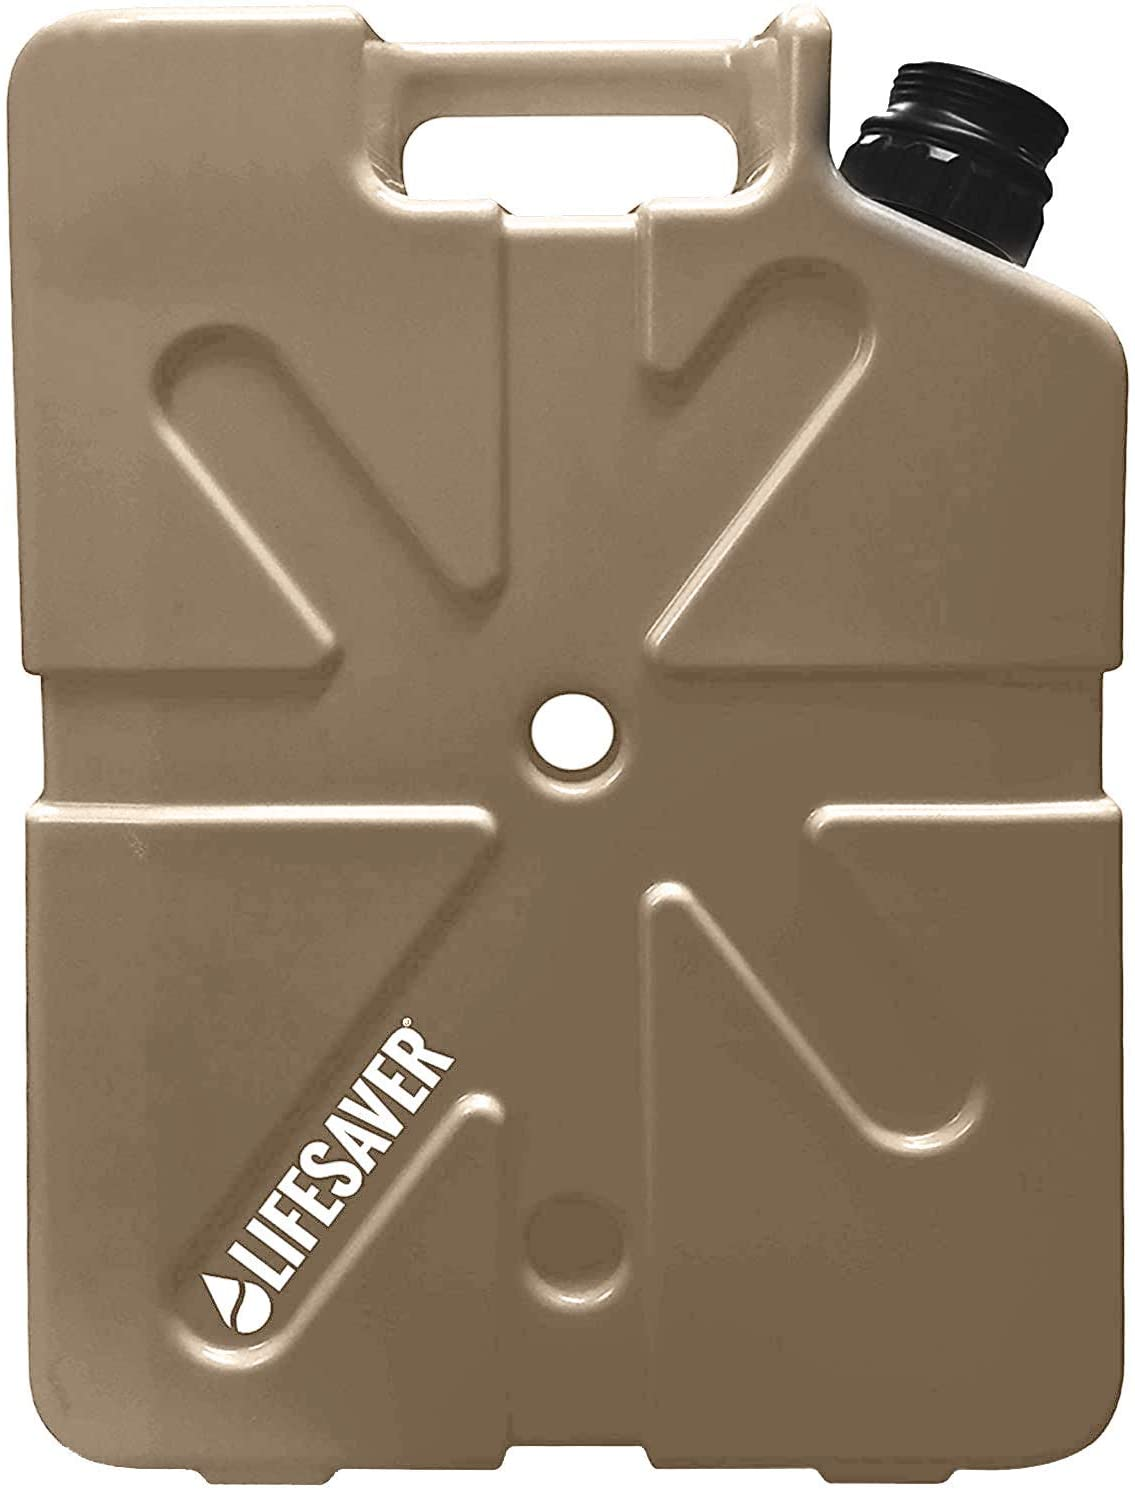 LifeSaver Portable Water Filter Jerry Can 20L (Tan)